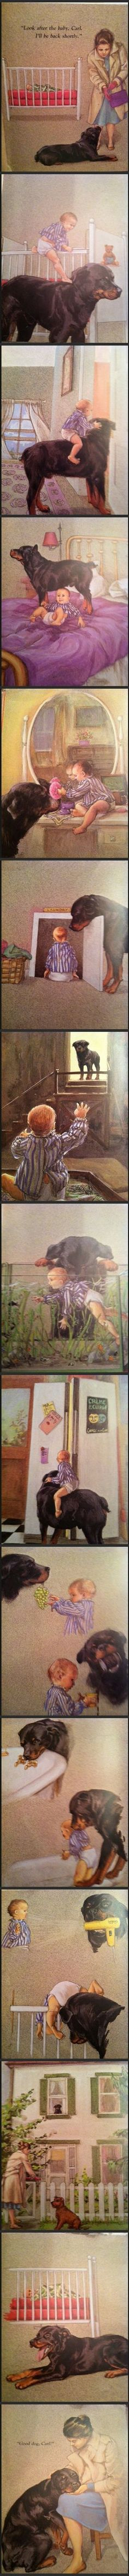 Notice the dog bread in this old story book...stop #bsl #nannydog